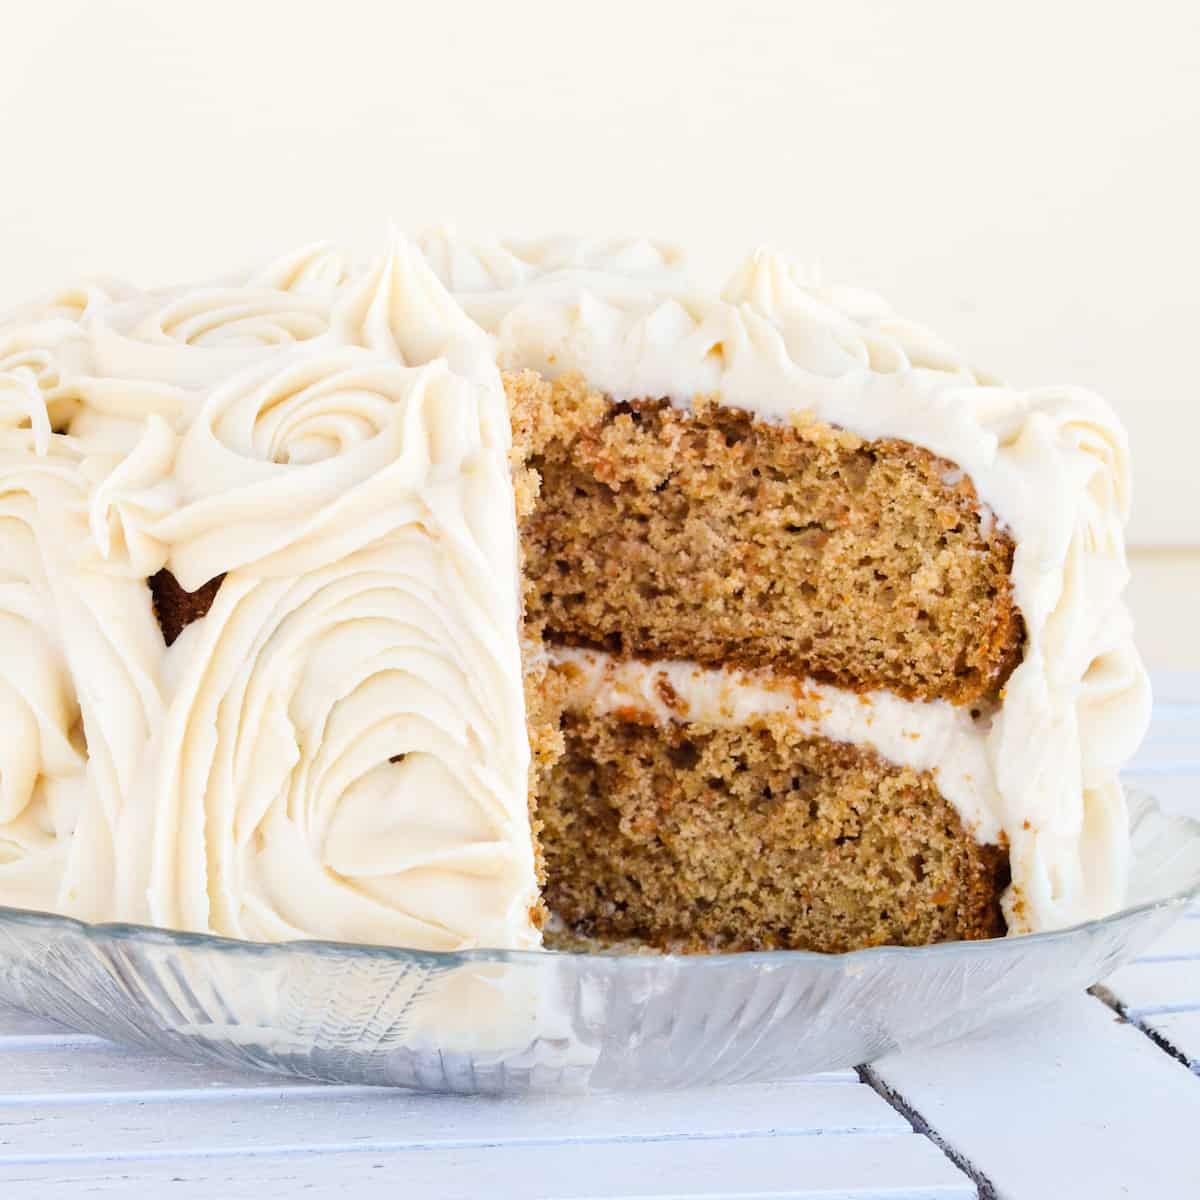 front view of a carrot cake with a slice cut out of it